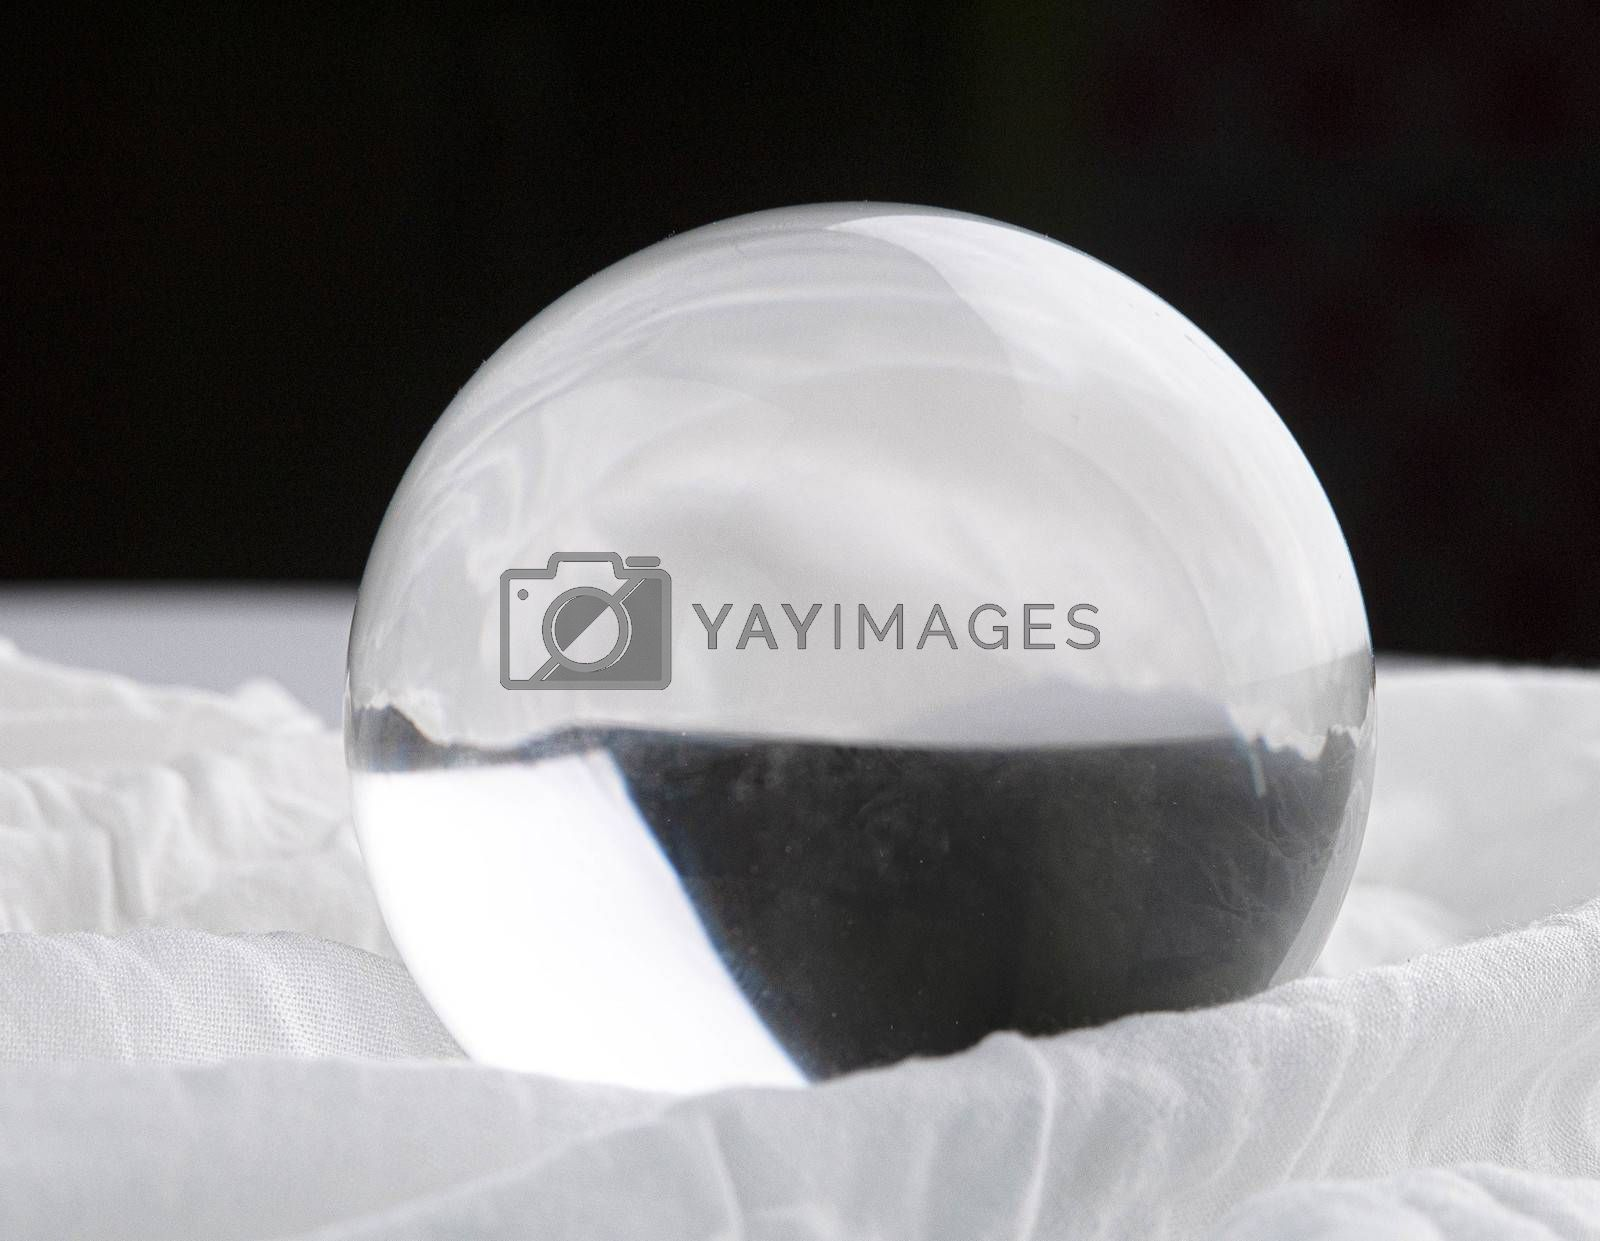 Crystal glass ball sphere transparent on white fabric and dark background.